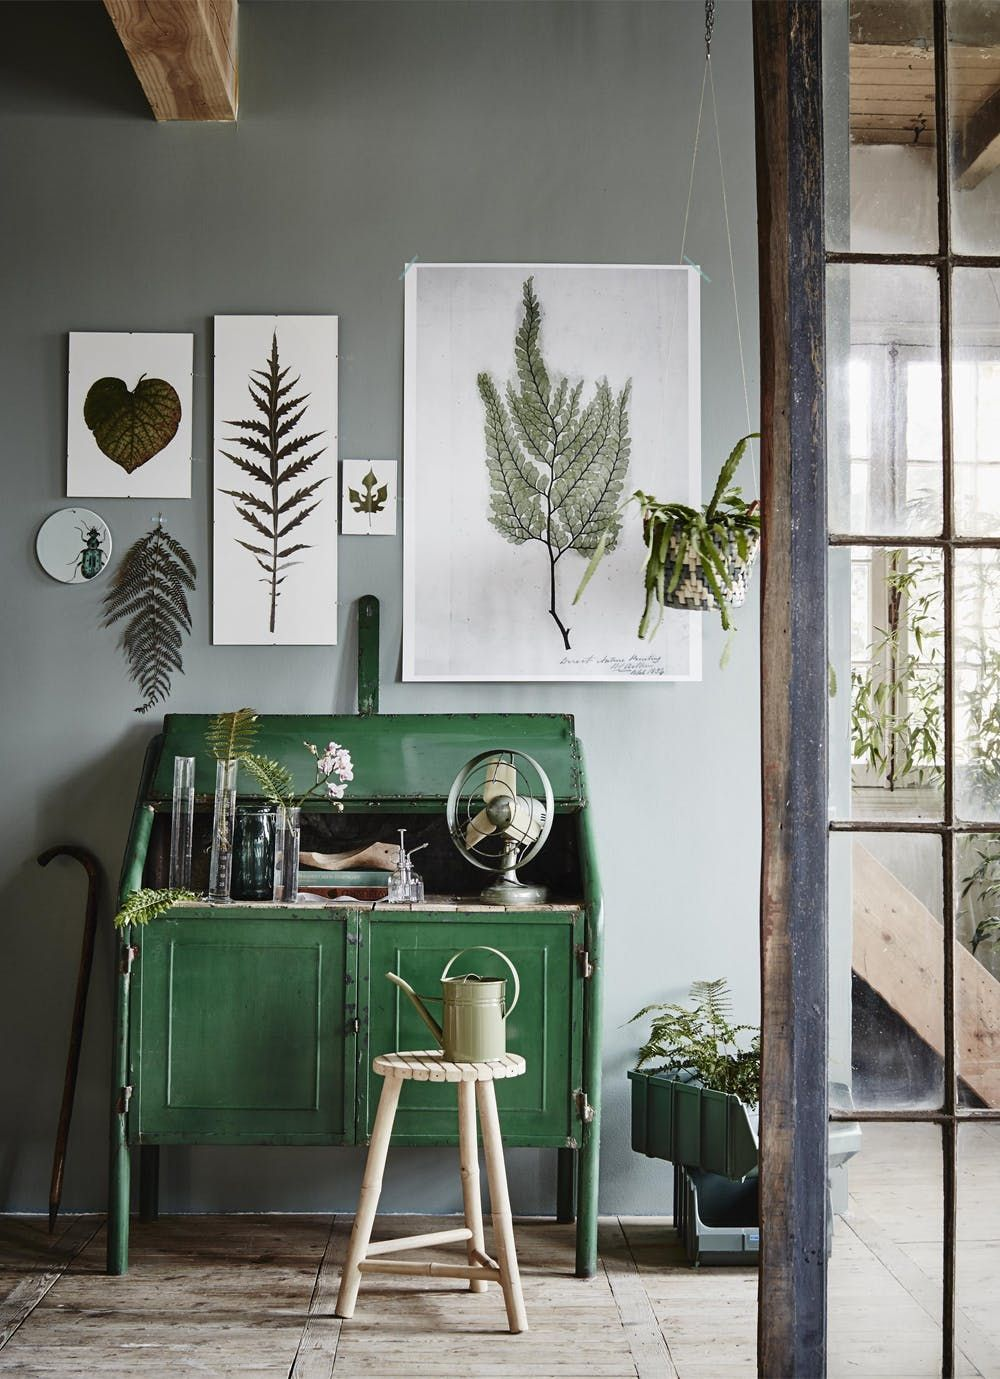 Decorate with what you have things you may already own that make